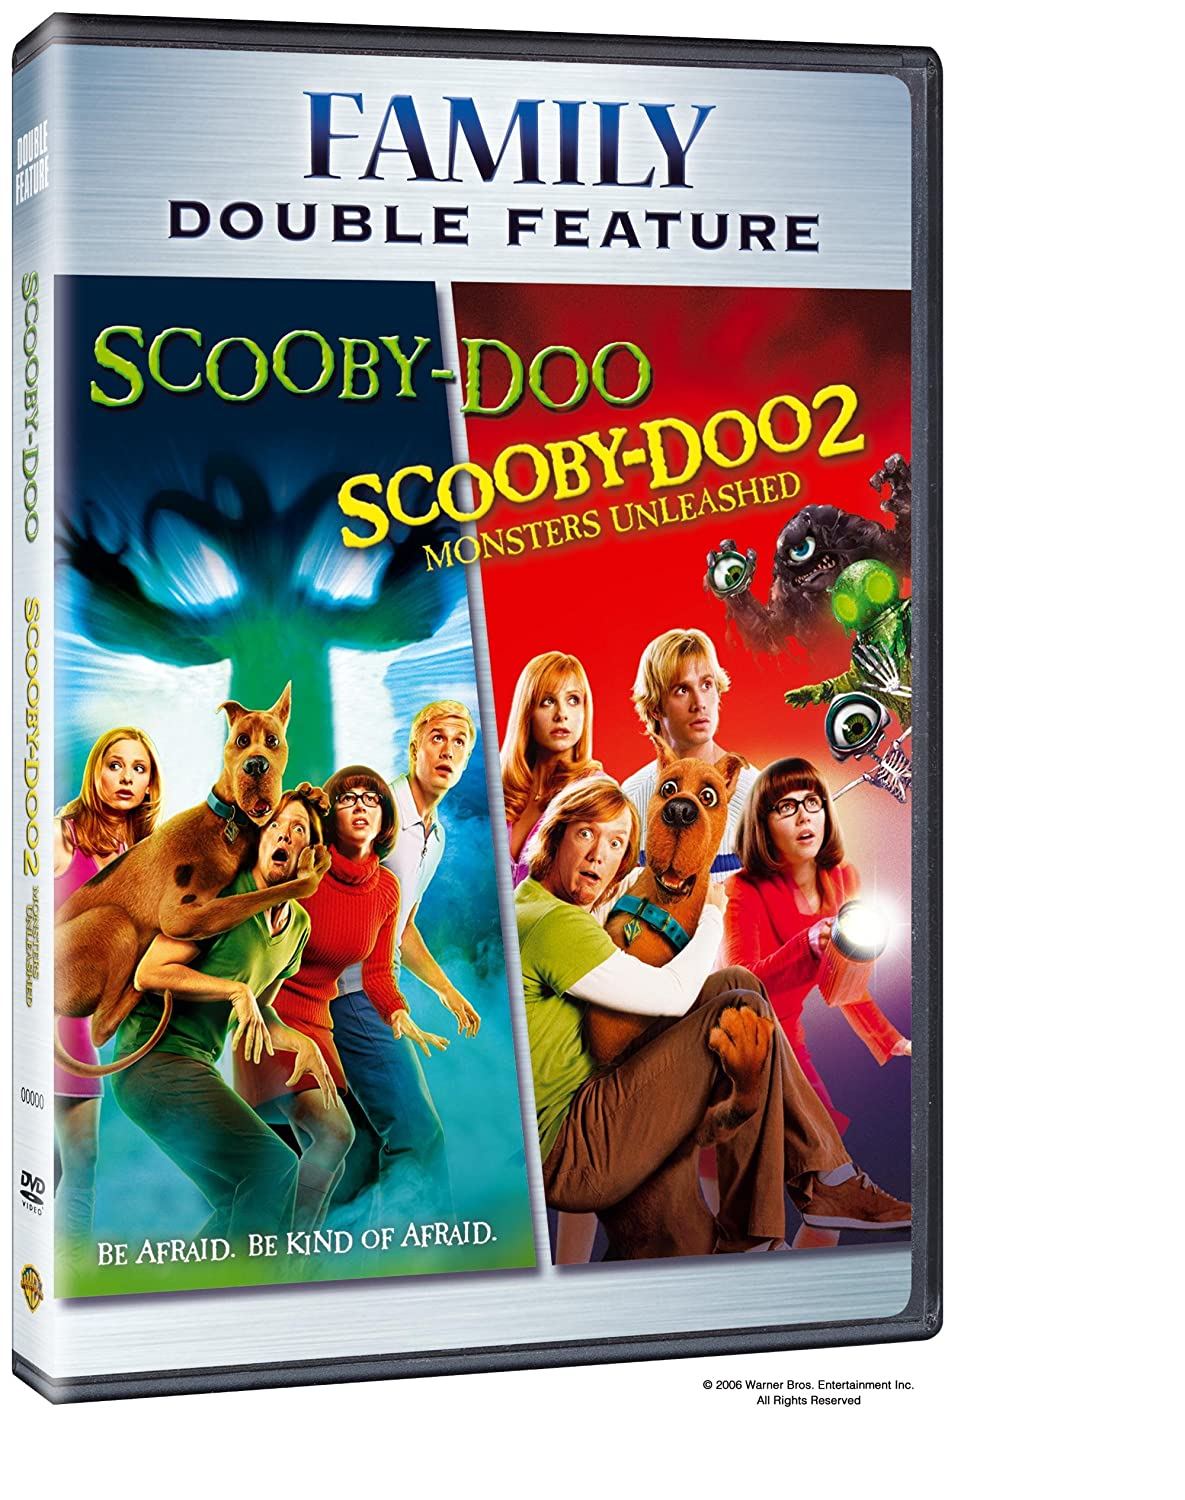 Amazon Com Scooby Doo The Movie Scooby Doo 2 Monsters Unleashed Dvd Dbfe Freddie Prinze Jr Sarah Micelle Gellar Matthew Lillard Linda Cardellini Raja Gosnell Movies Tv